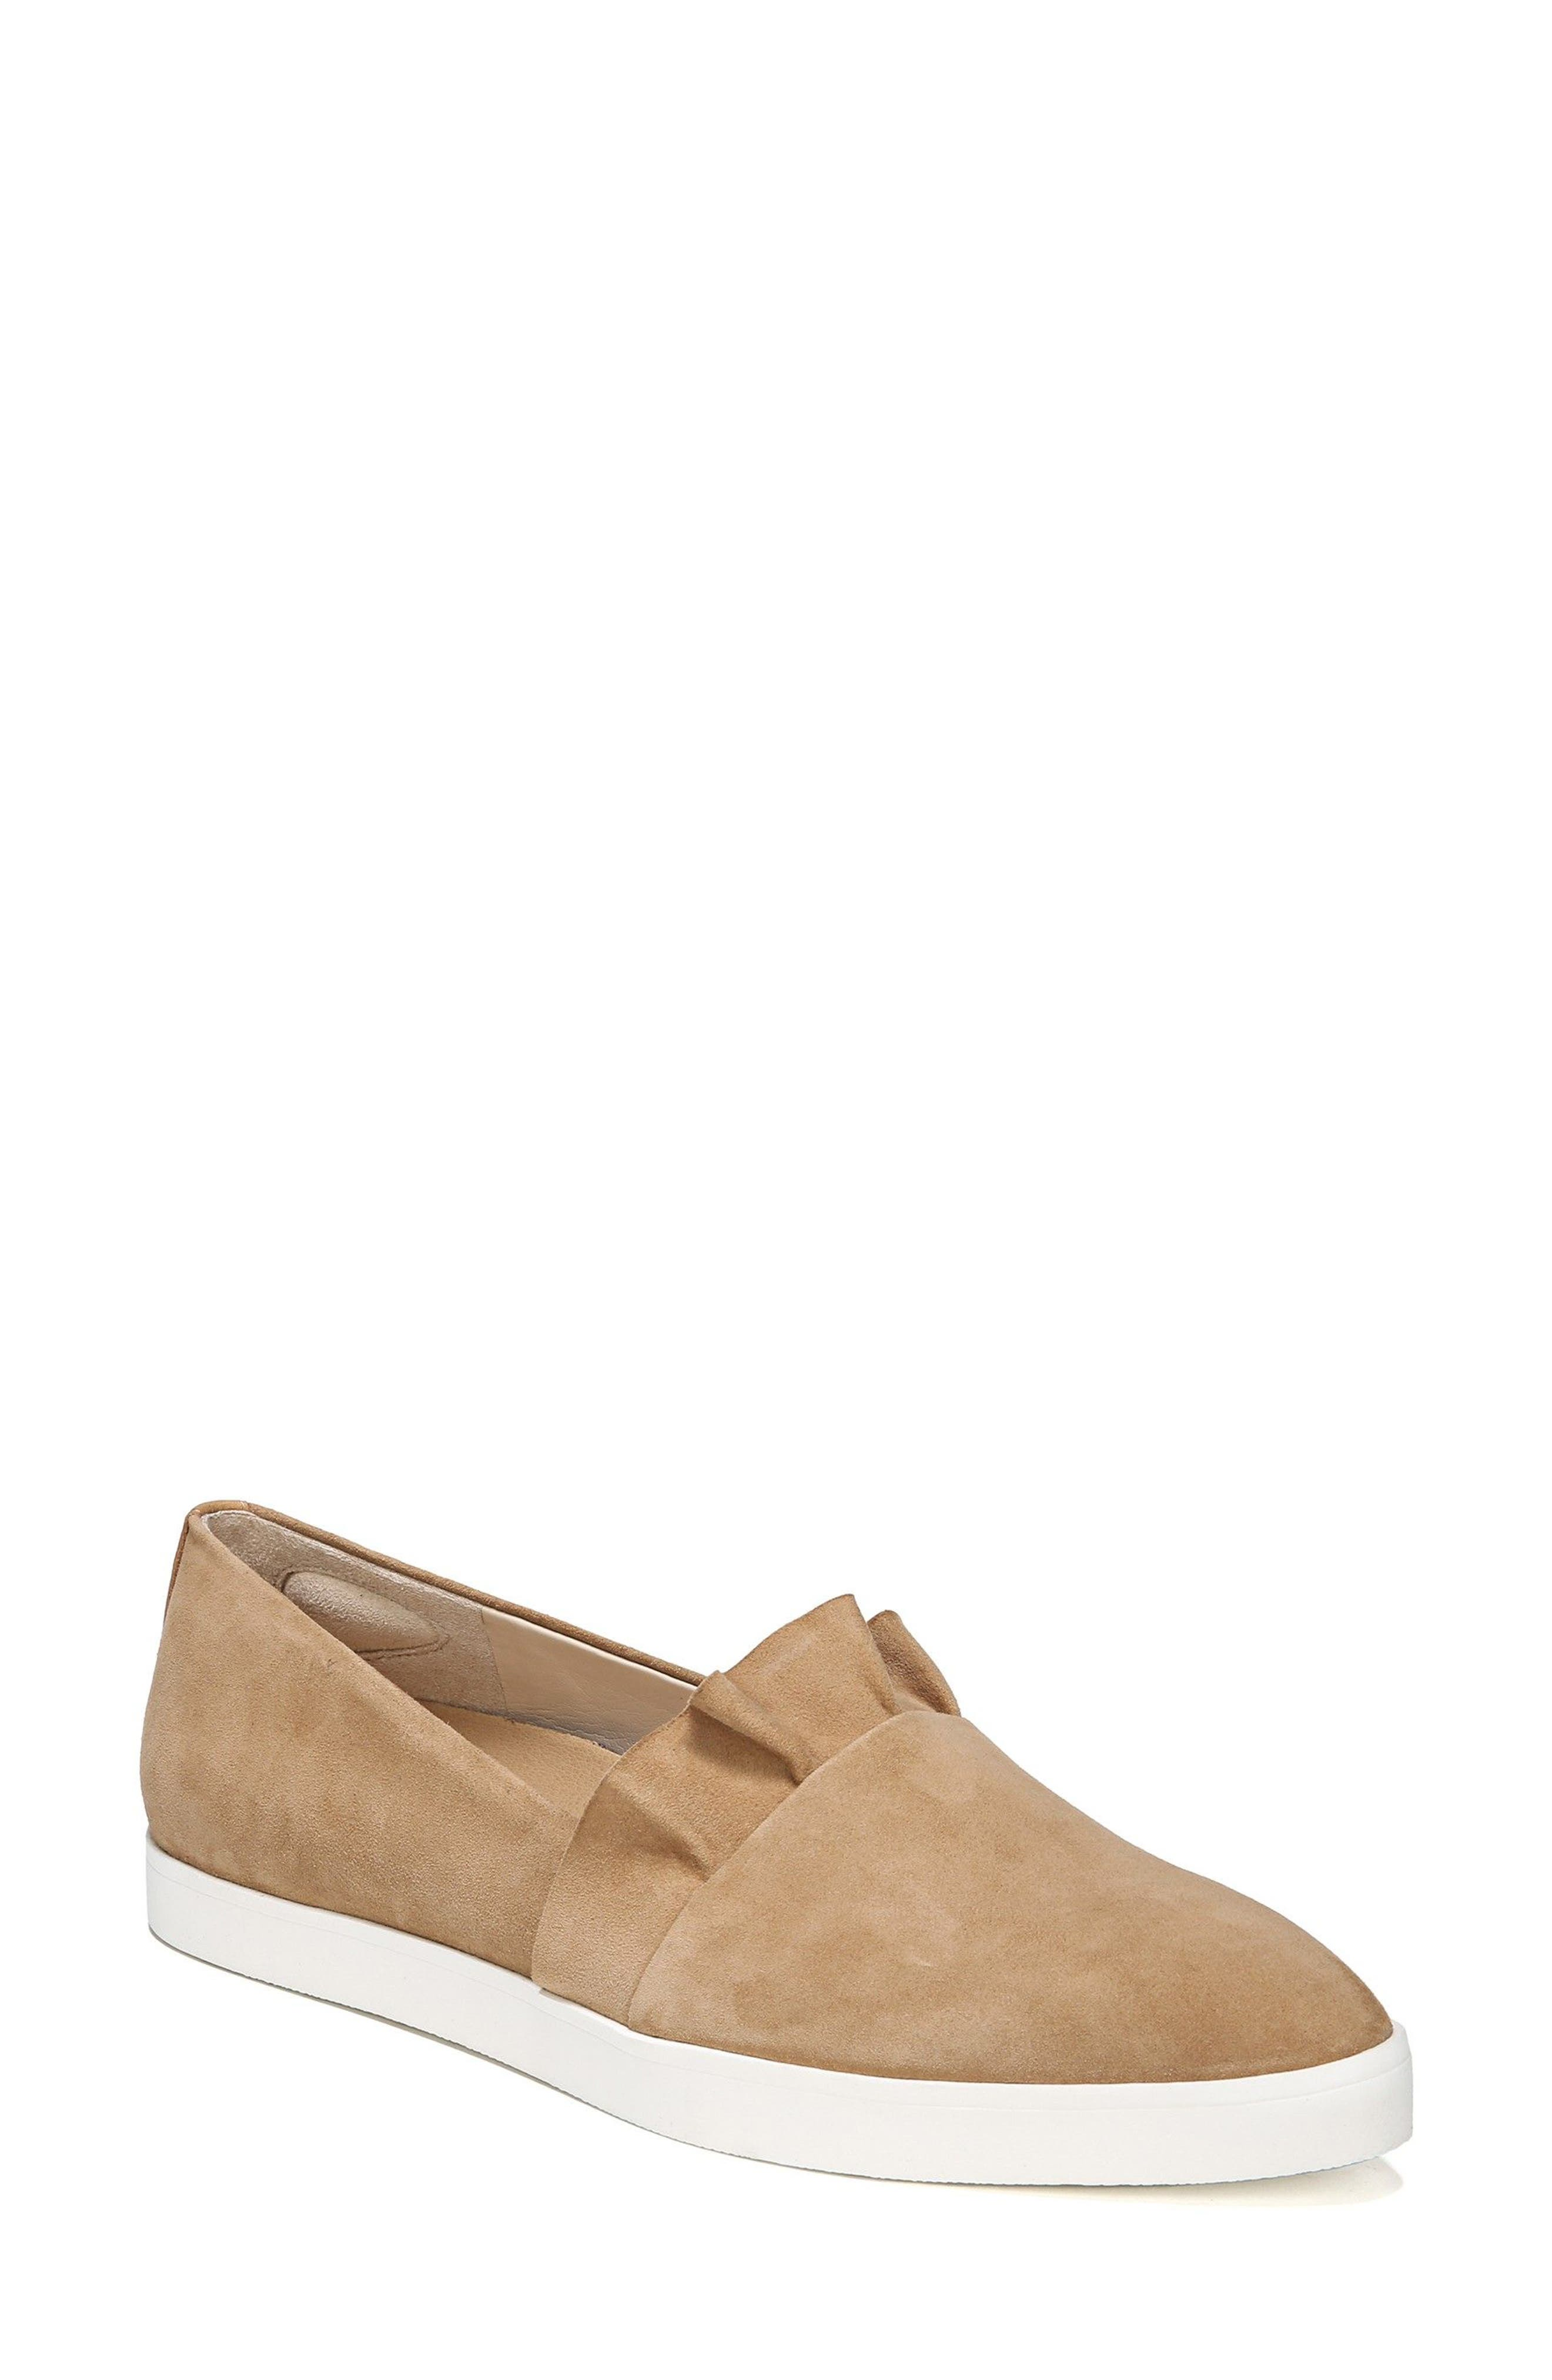 Vienna Slip-On Sneaker,                             Main thumbnail 1, color,                             Nude Suede